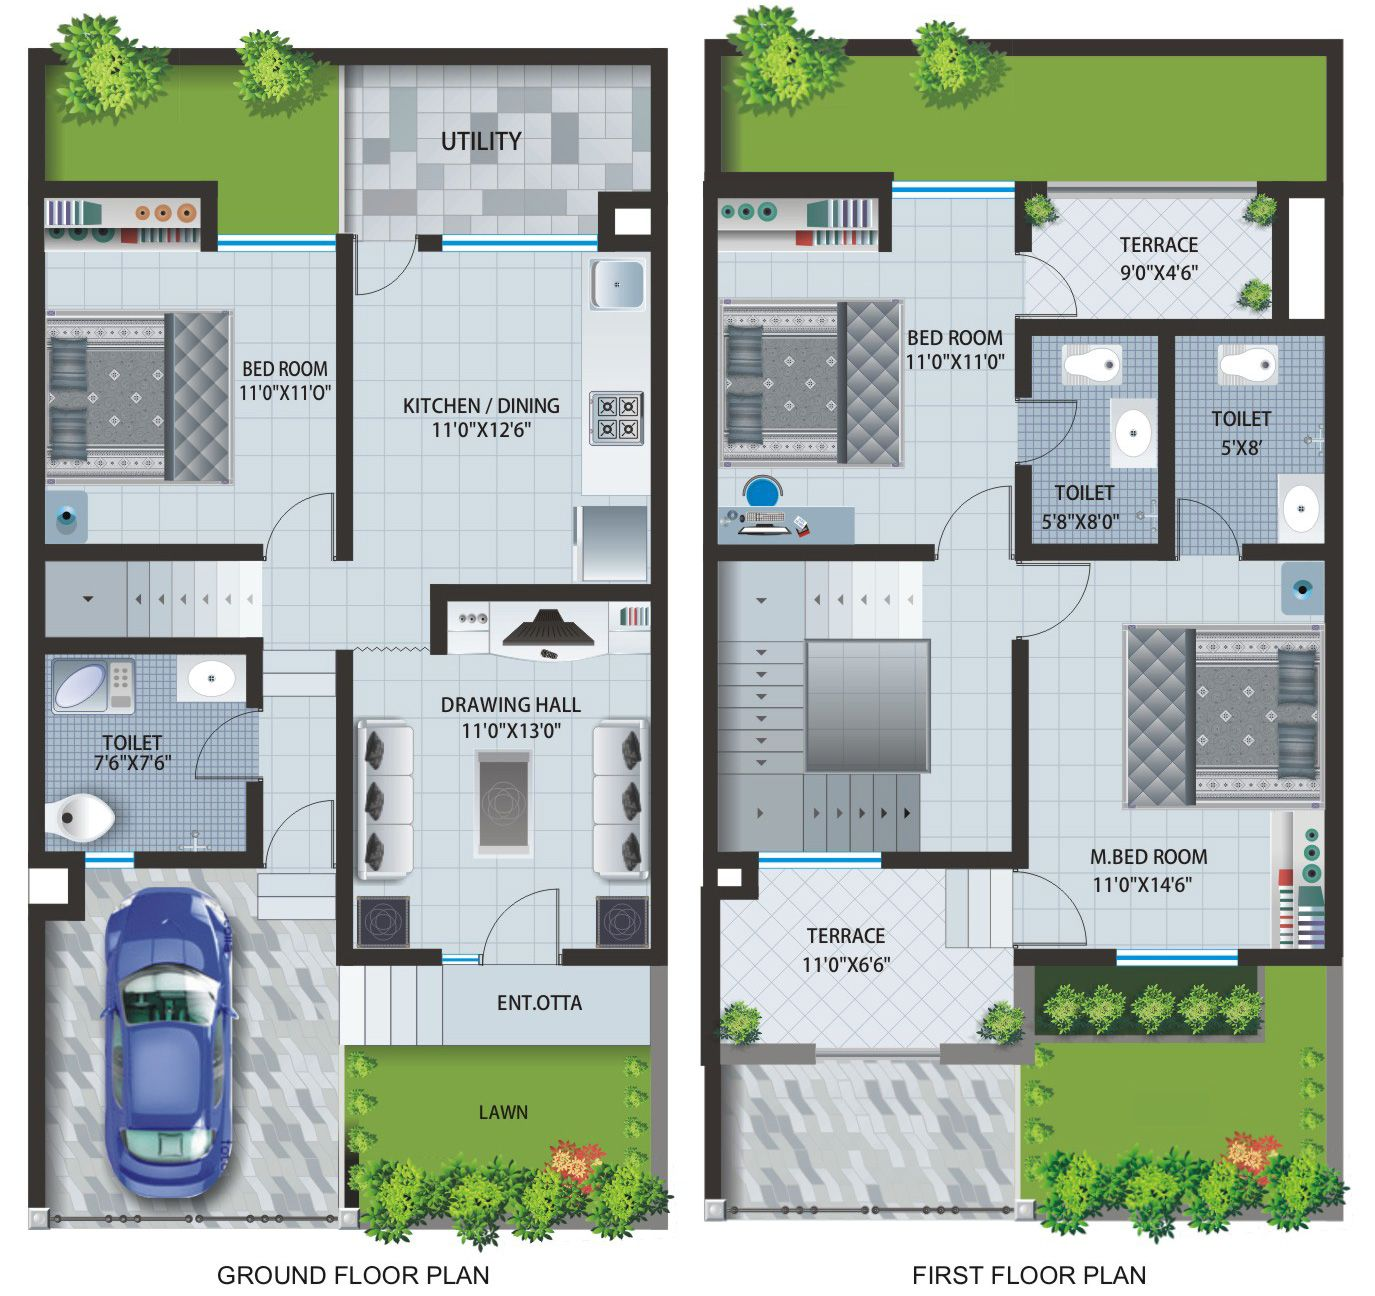 Floor Plans Of Apartments & Row Houses At Caroline Baner Plans